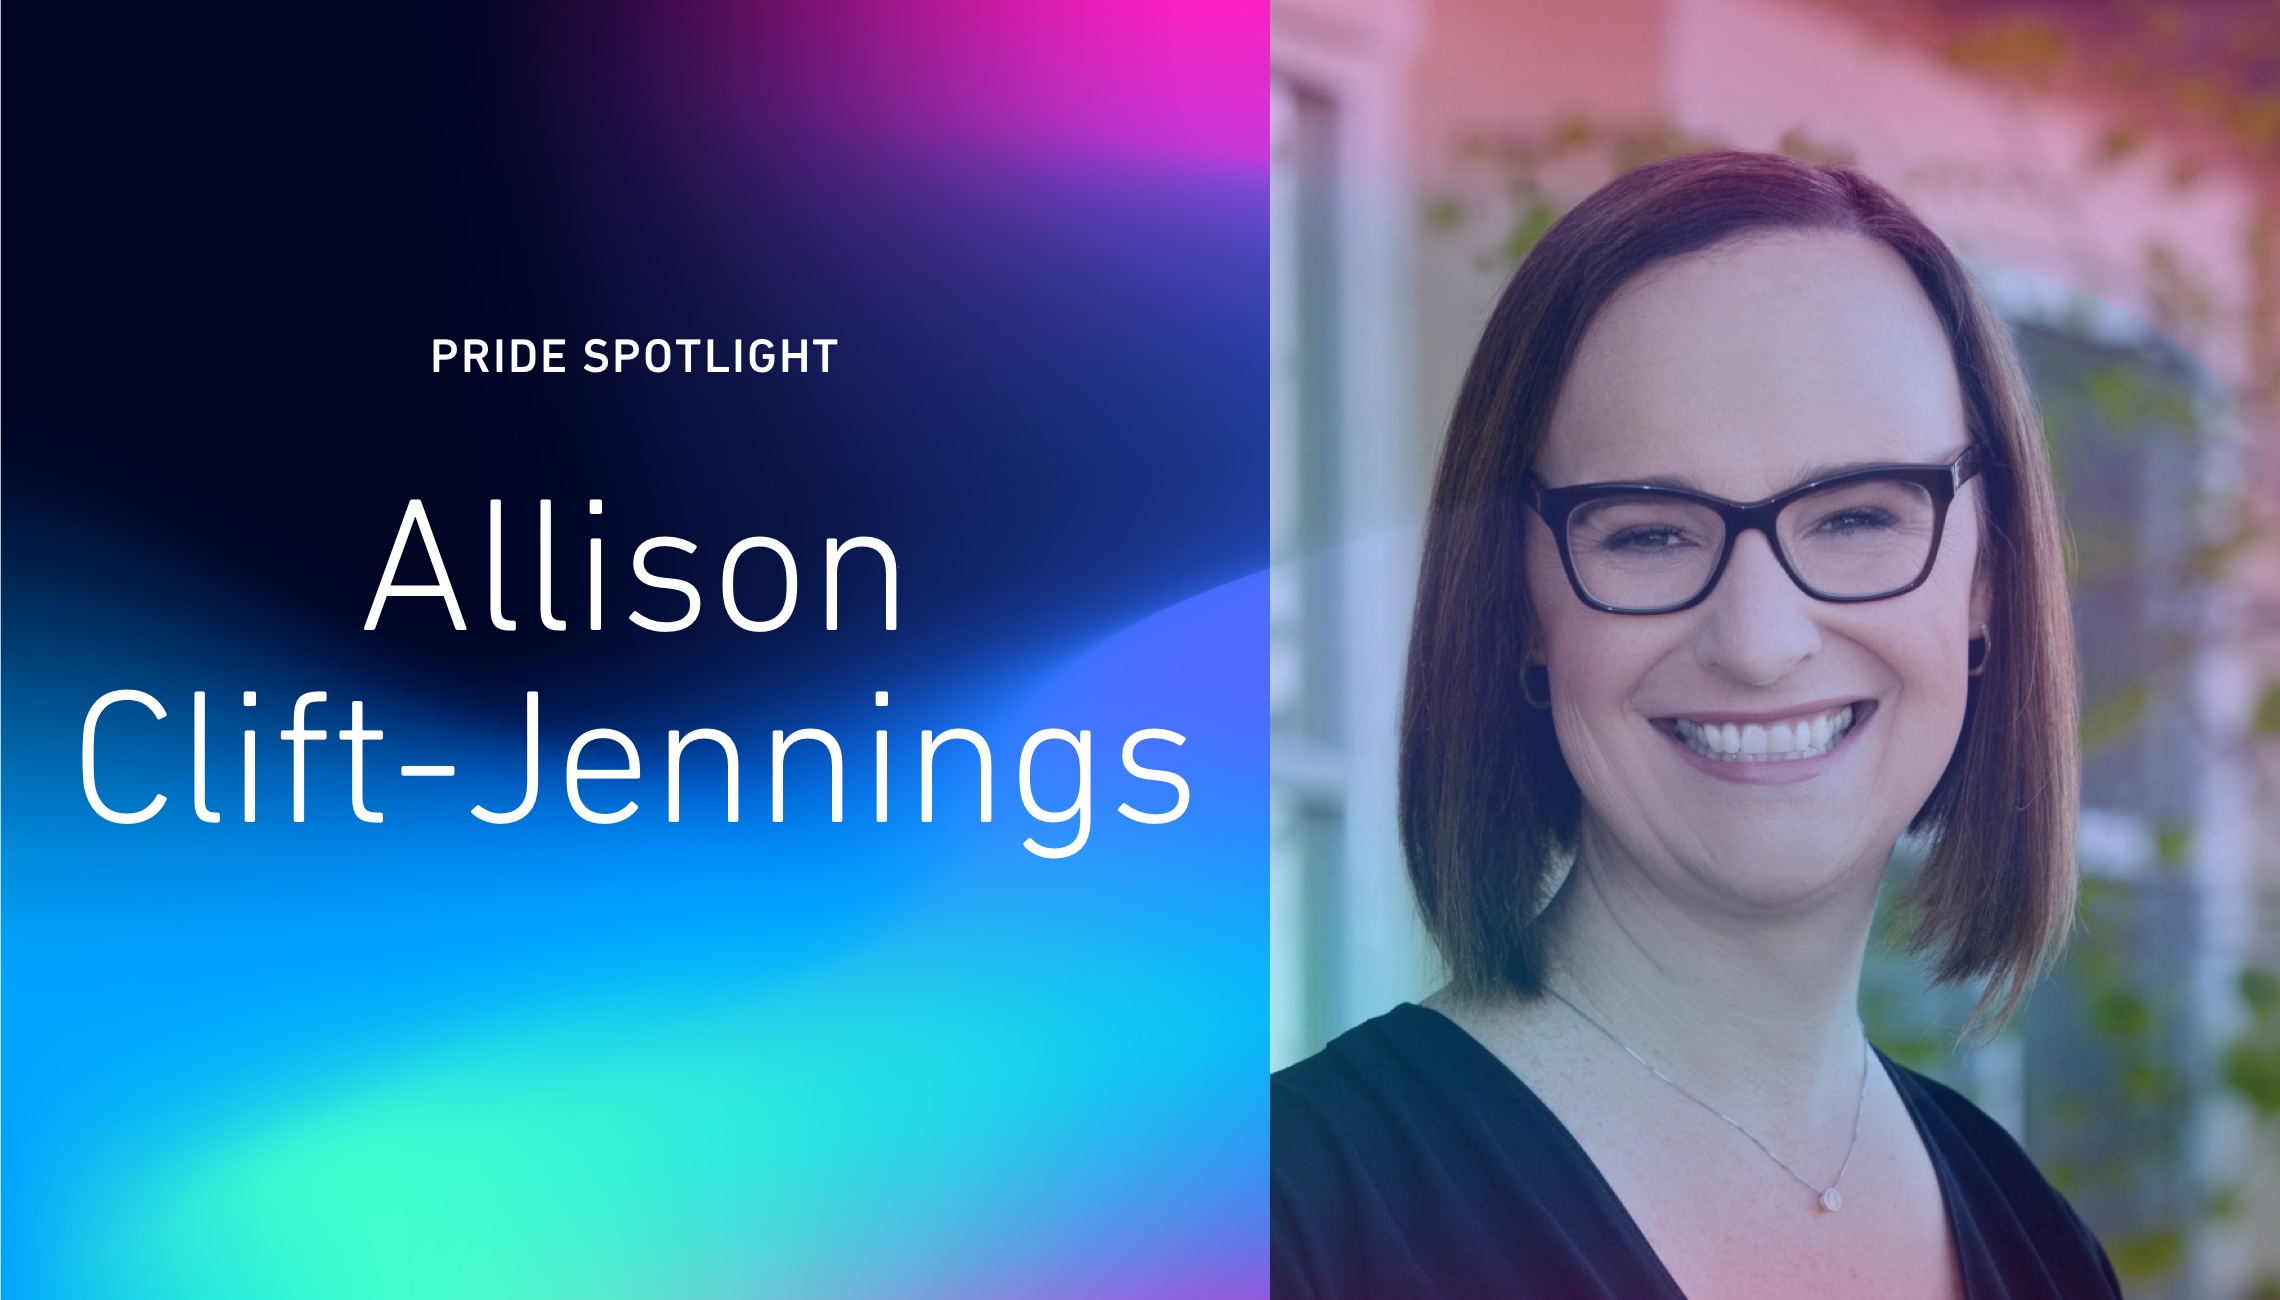 Pride Spotlight: Allison Clift-Jennings